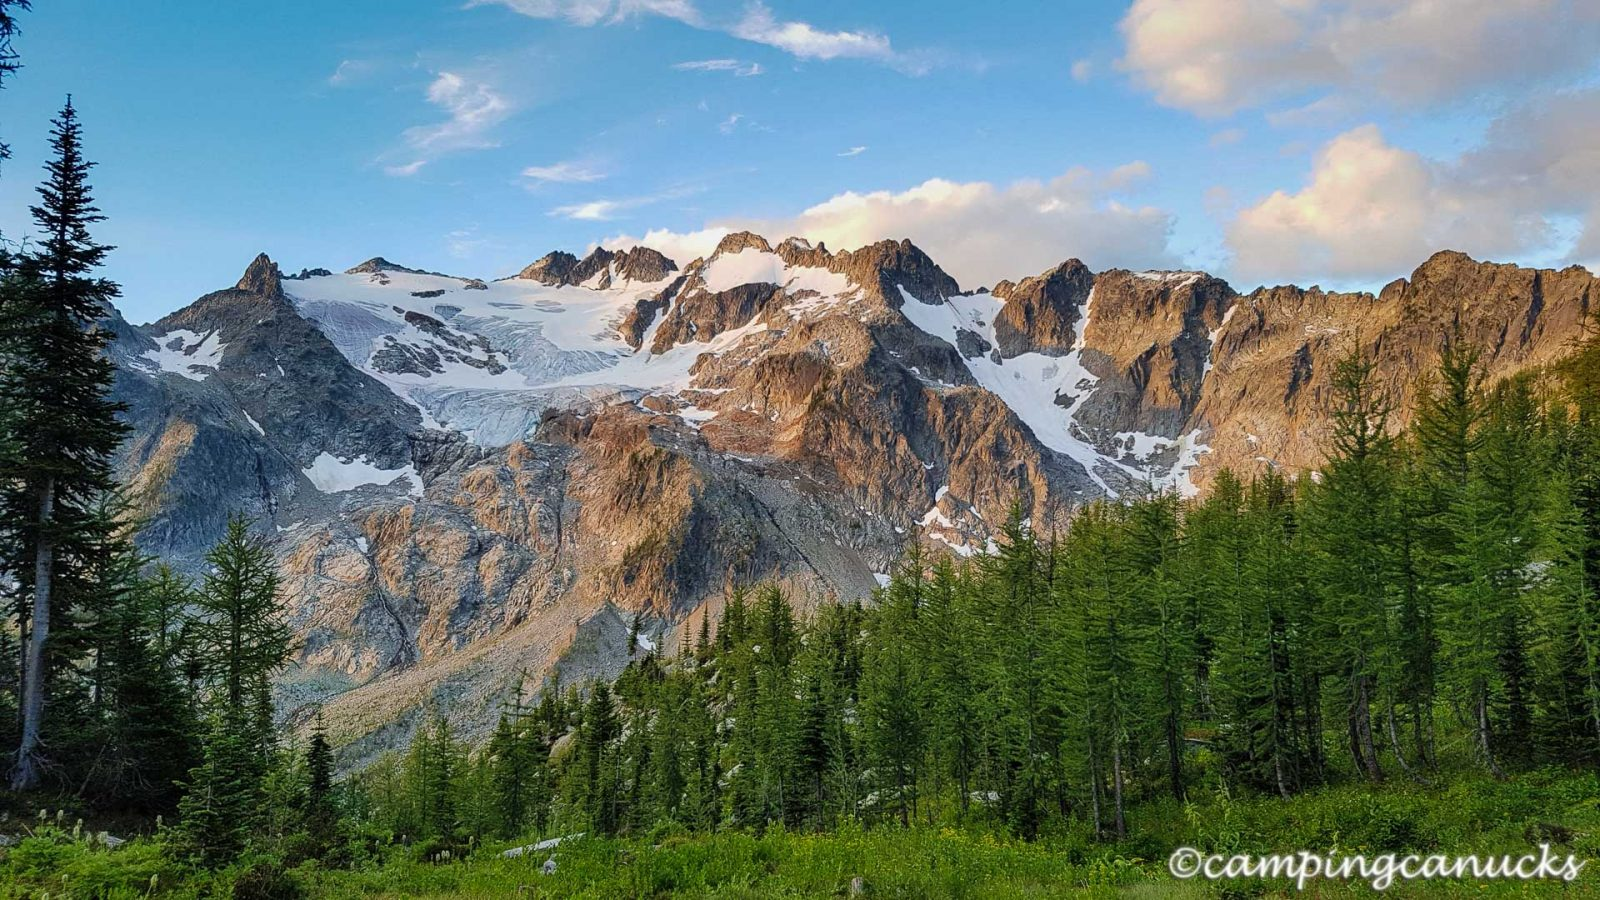 The morning sun lights up the Woodbury Glacier and surrounding peaks